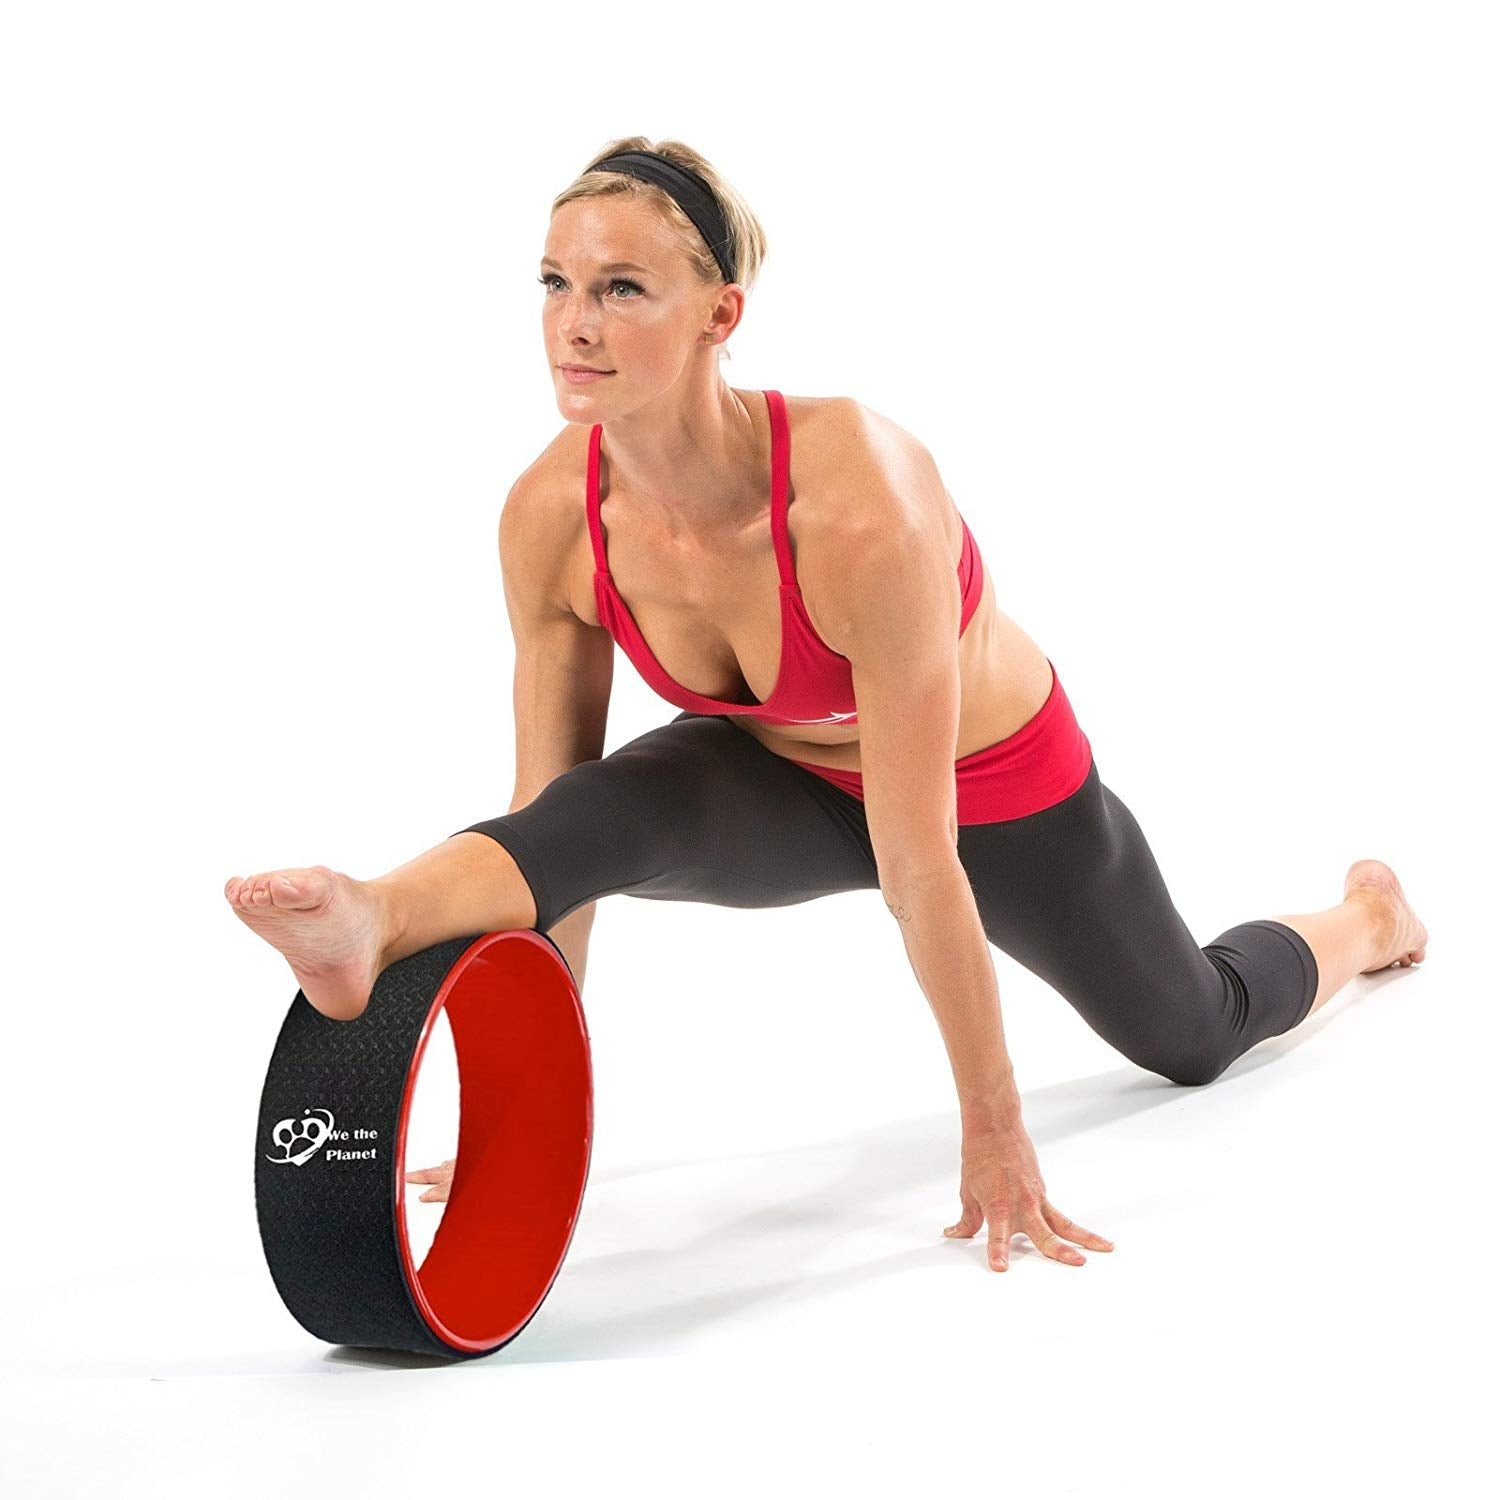 Eco-Friendly Dharma//Back Stretcher Wheel Prop Roller Wheel Improves Backbends and Technique We The Planet Premium Yoga Wheel